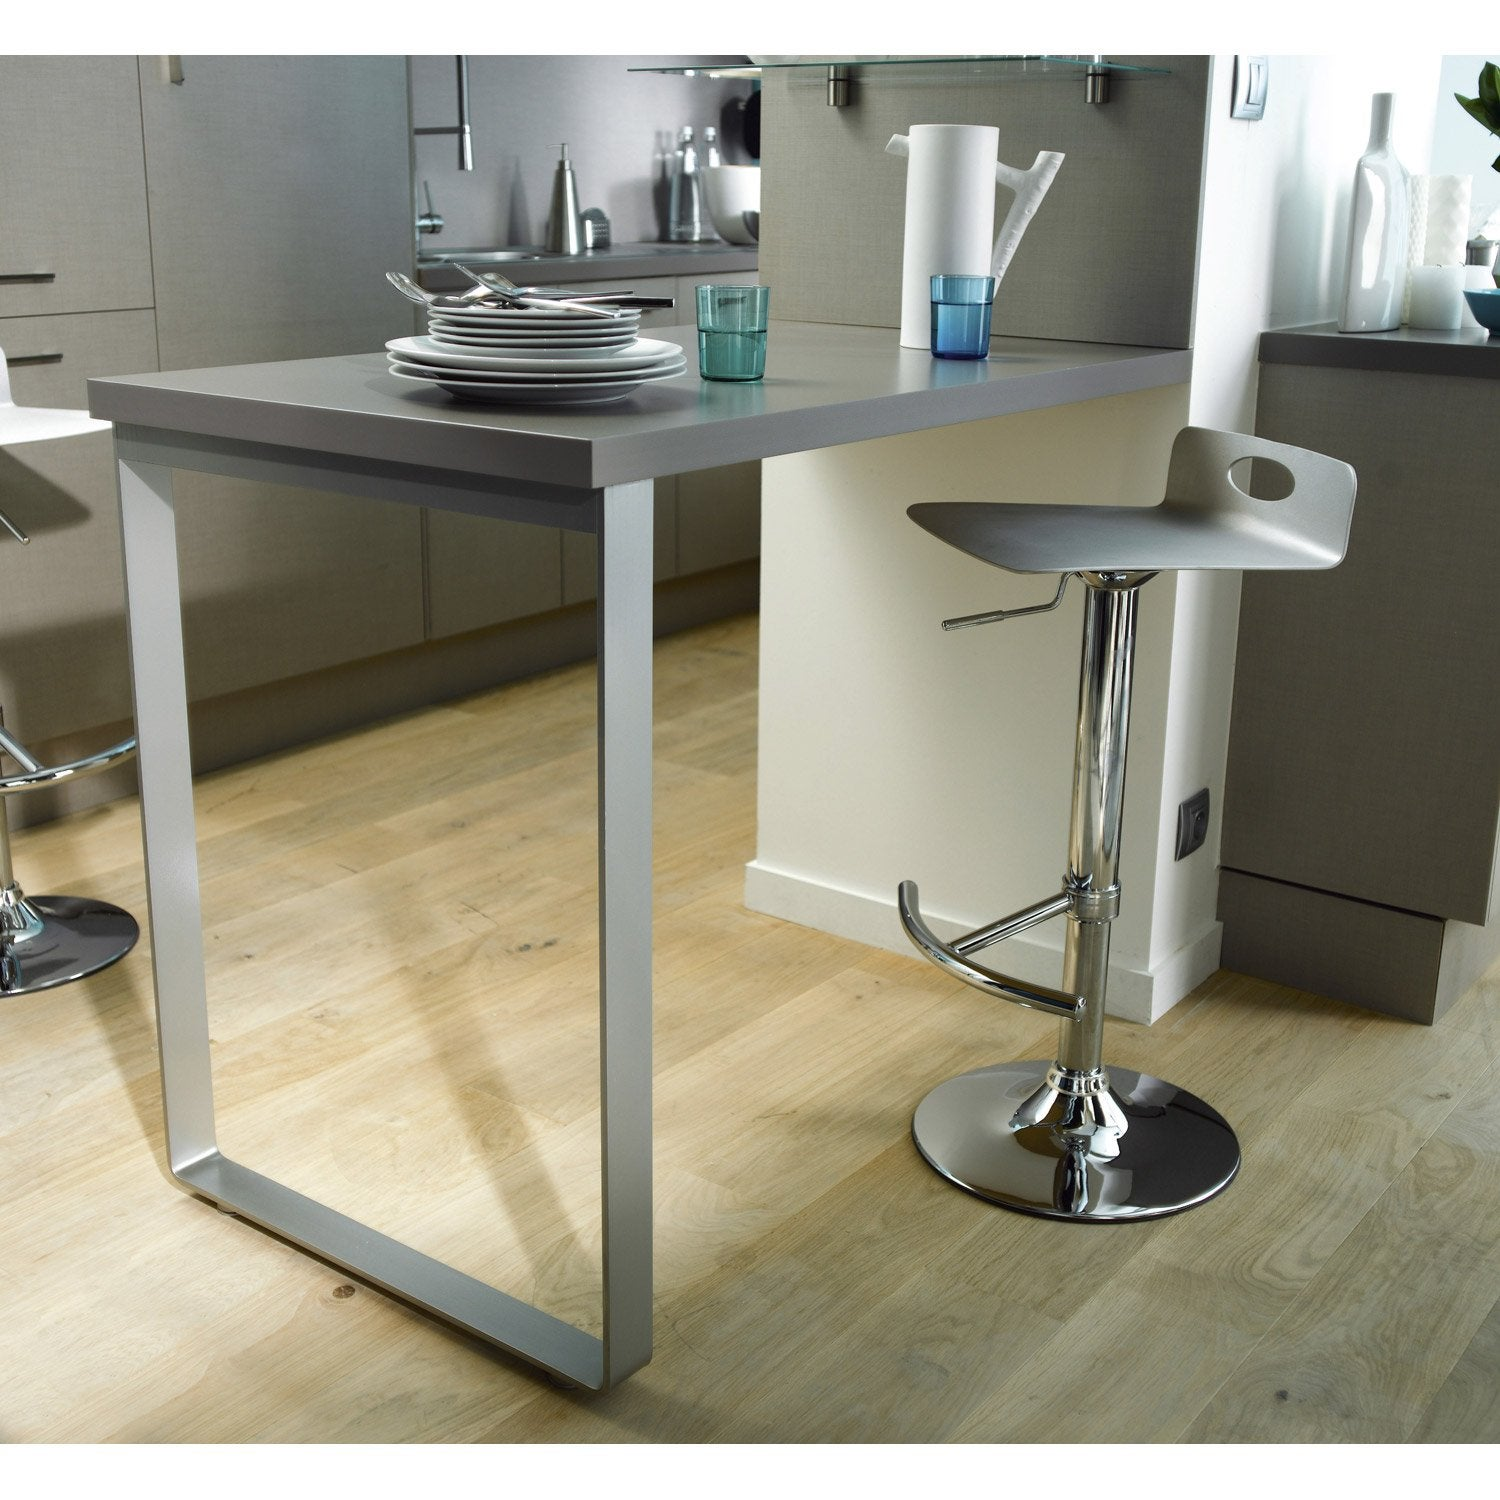 Pied gris x cm leroy merlin for Table de cuisine pliante leroy merlin